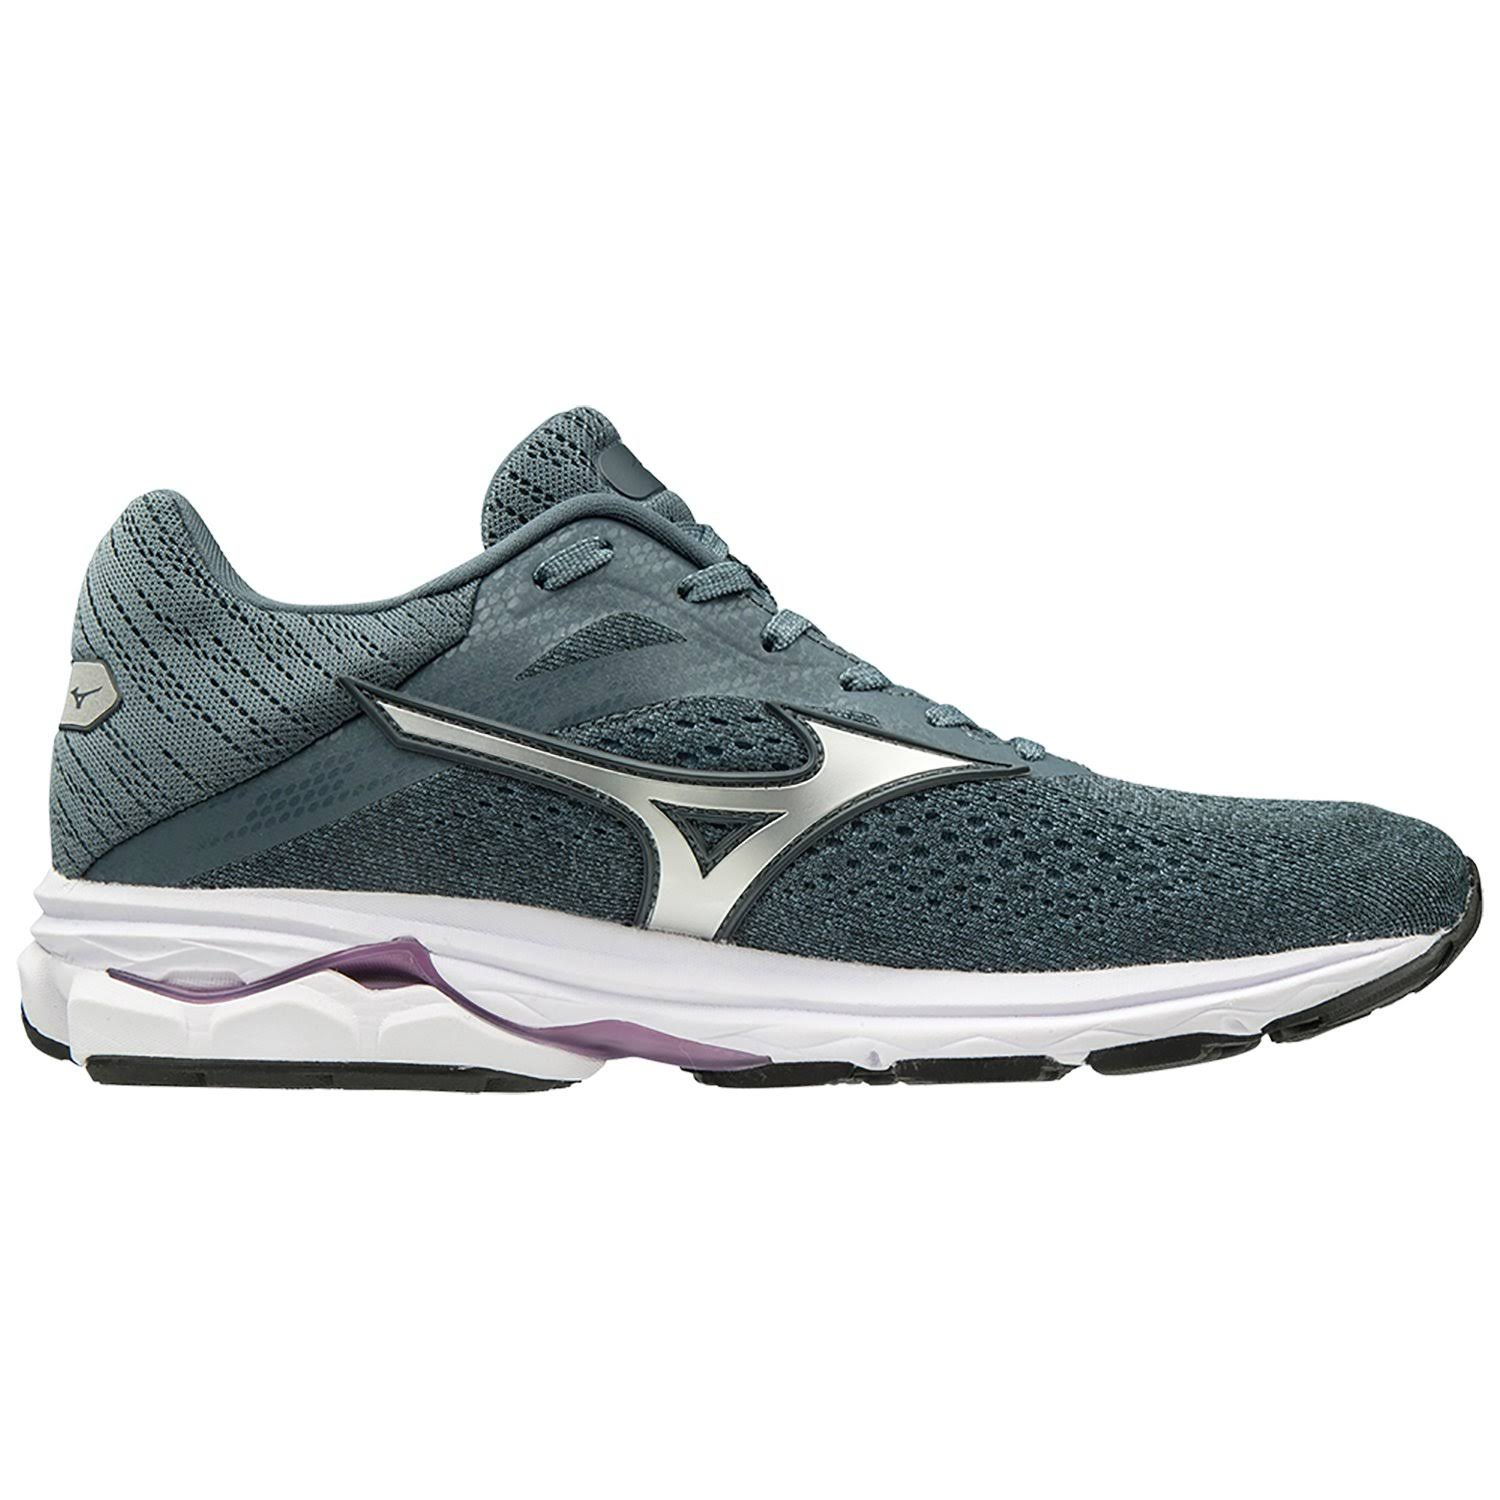 Mizuno Women's Wave Rider 23 Running Shoe - Citadel / Glacier Gray, 8